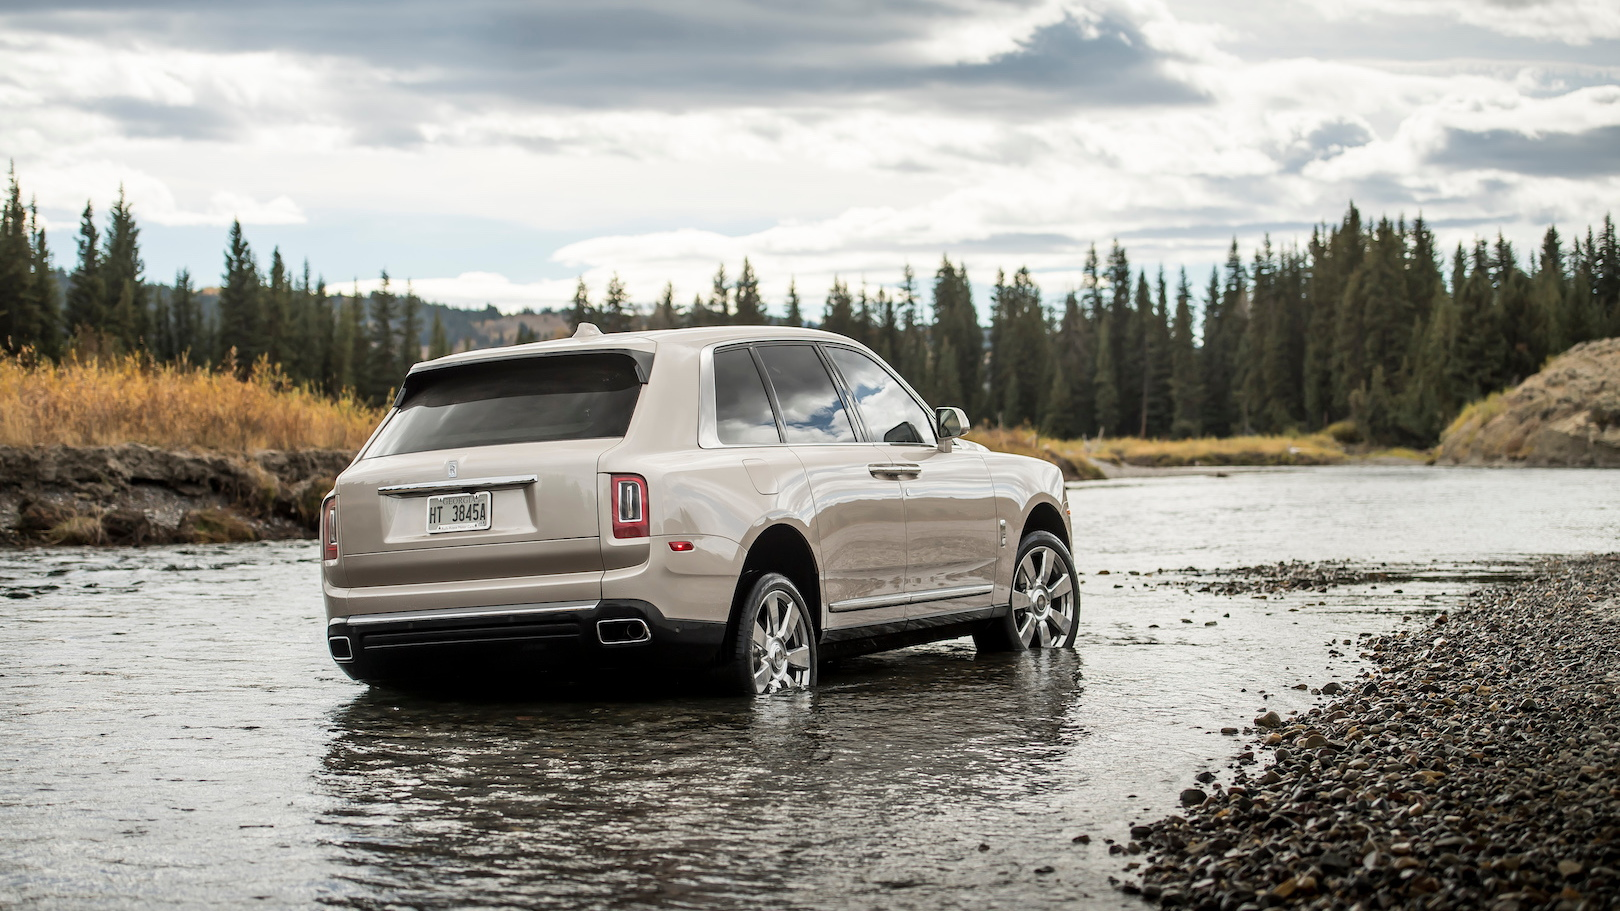 Rolls-Royce Cullinan Demand Outstrips Production Capacity